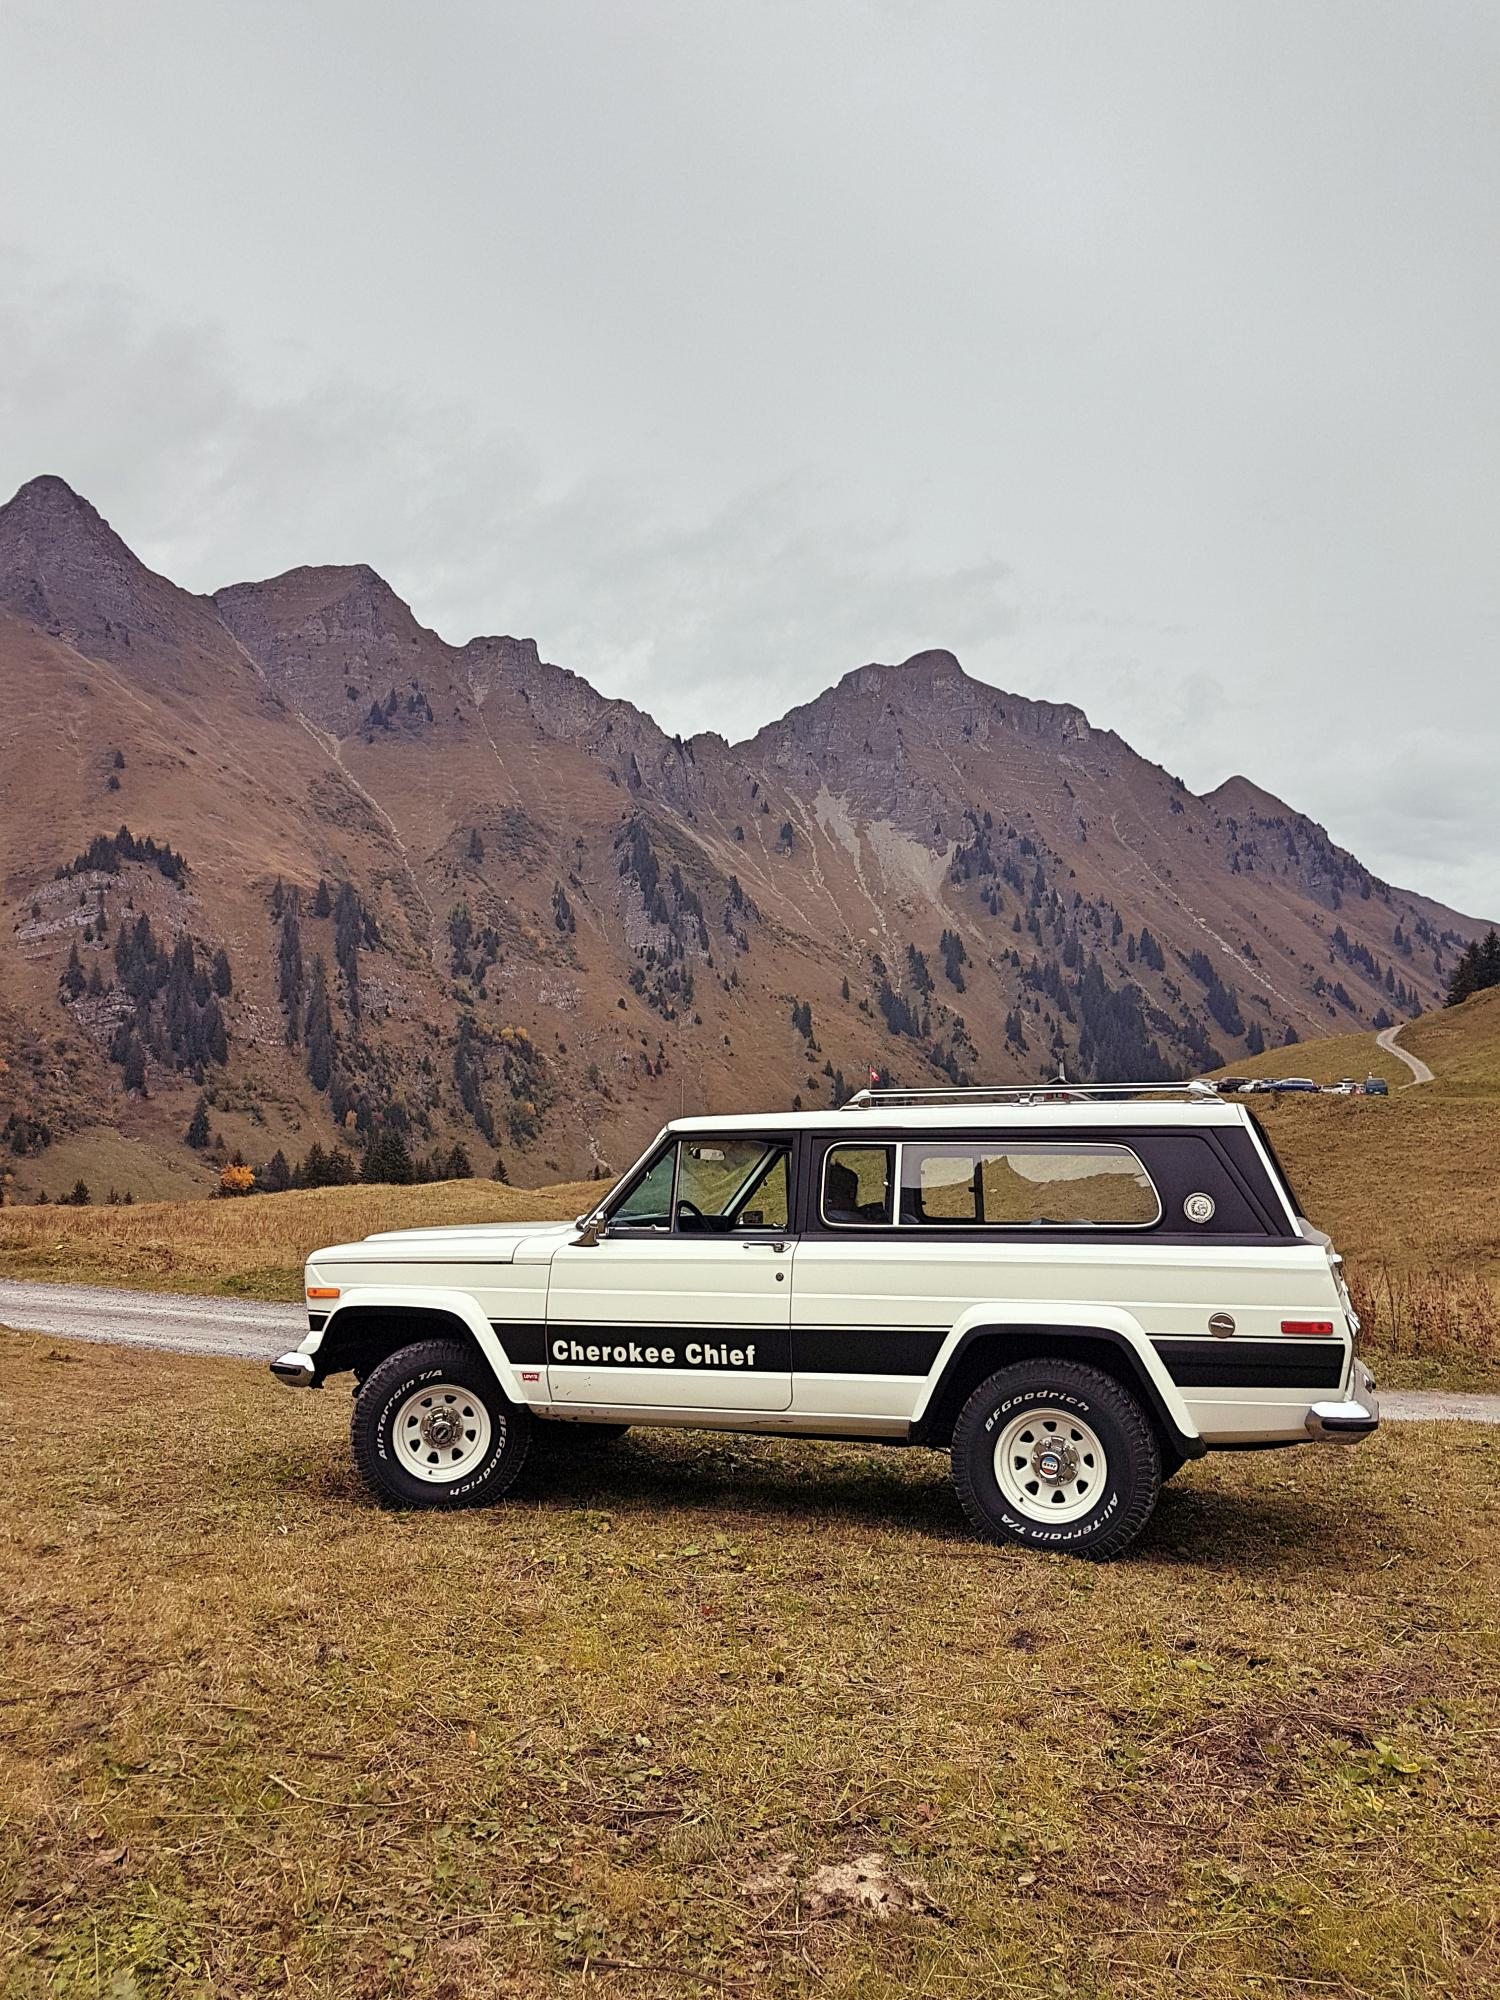 jeep-cherokee-chief-1978-shooting-morgins-switzerland-39.jpg